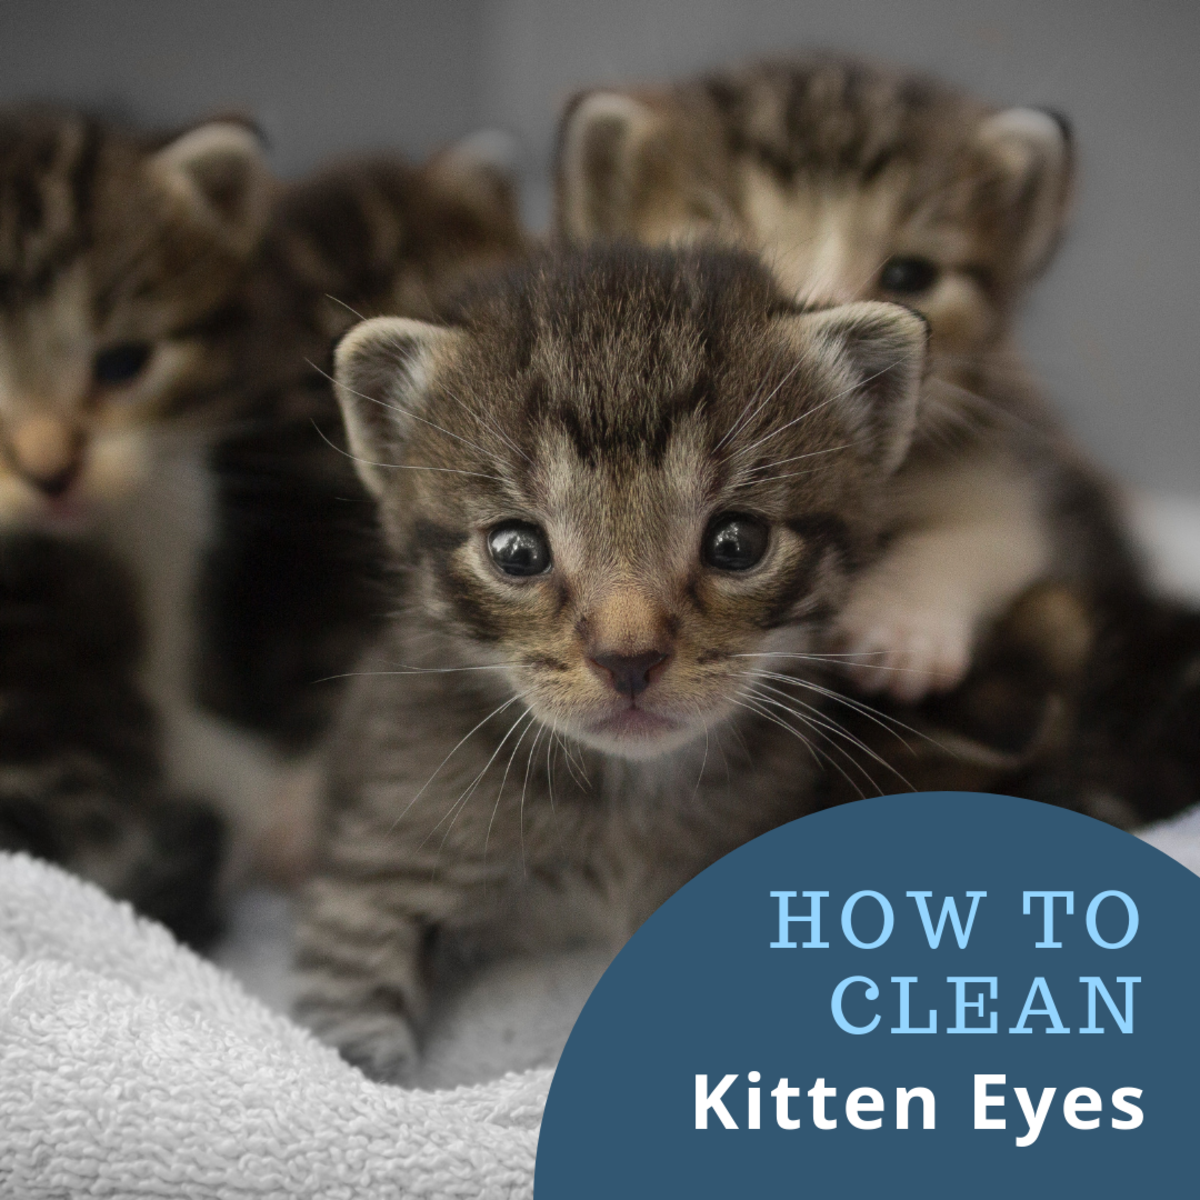 How to Clean Kitten Eyes That Are Matted Shut